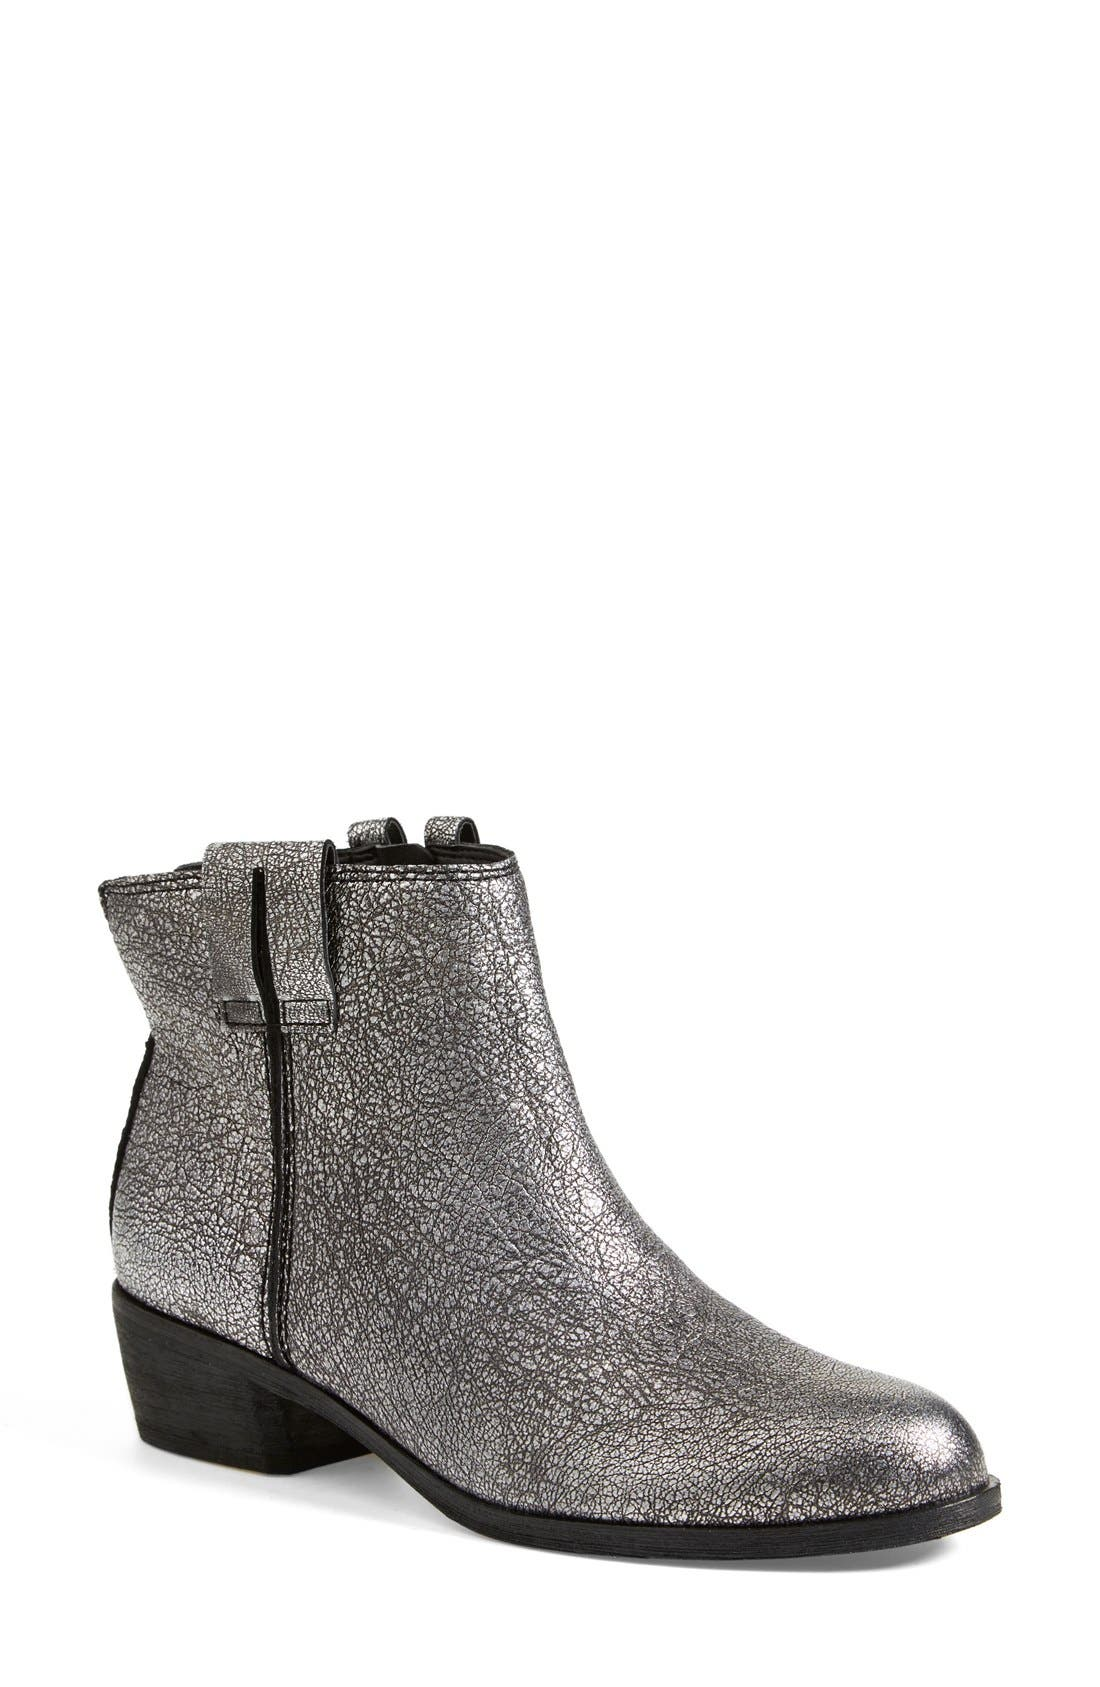 'James' Round Toe Bootie,                         Main,                         color, Argento Silver